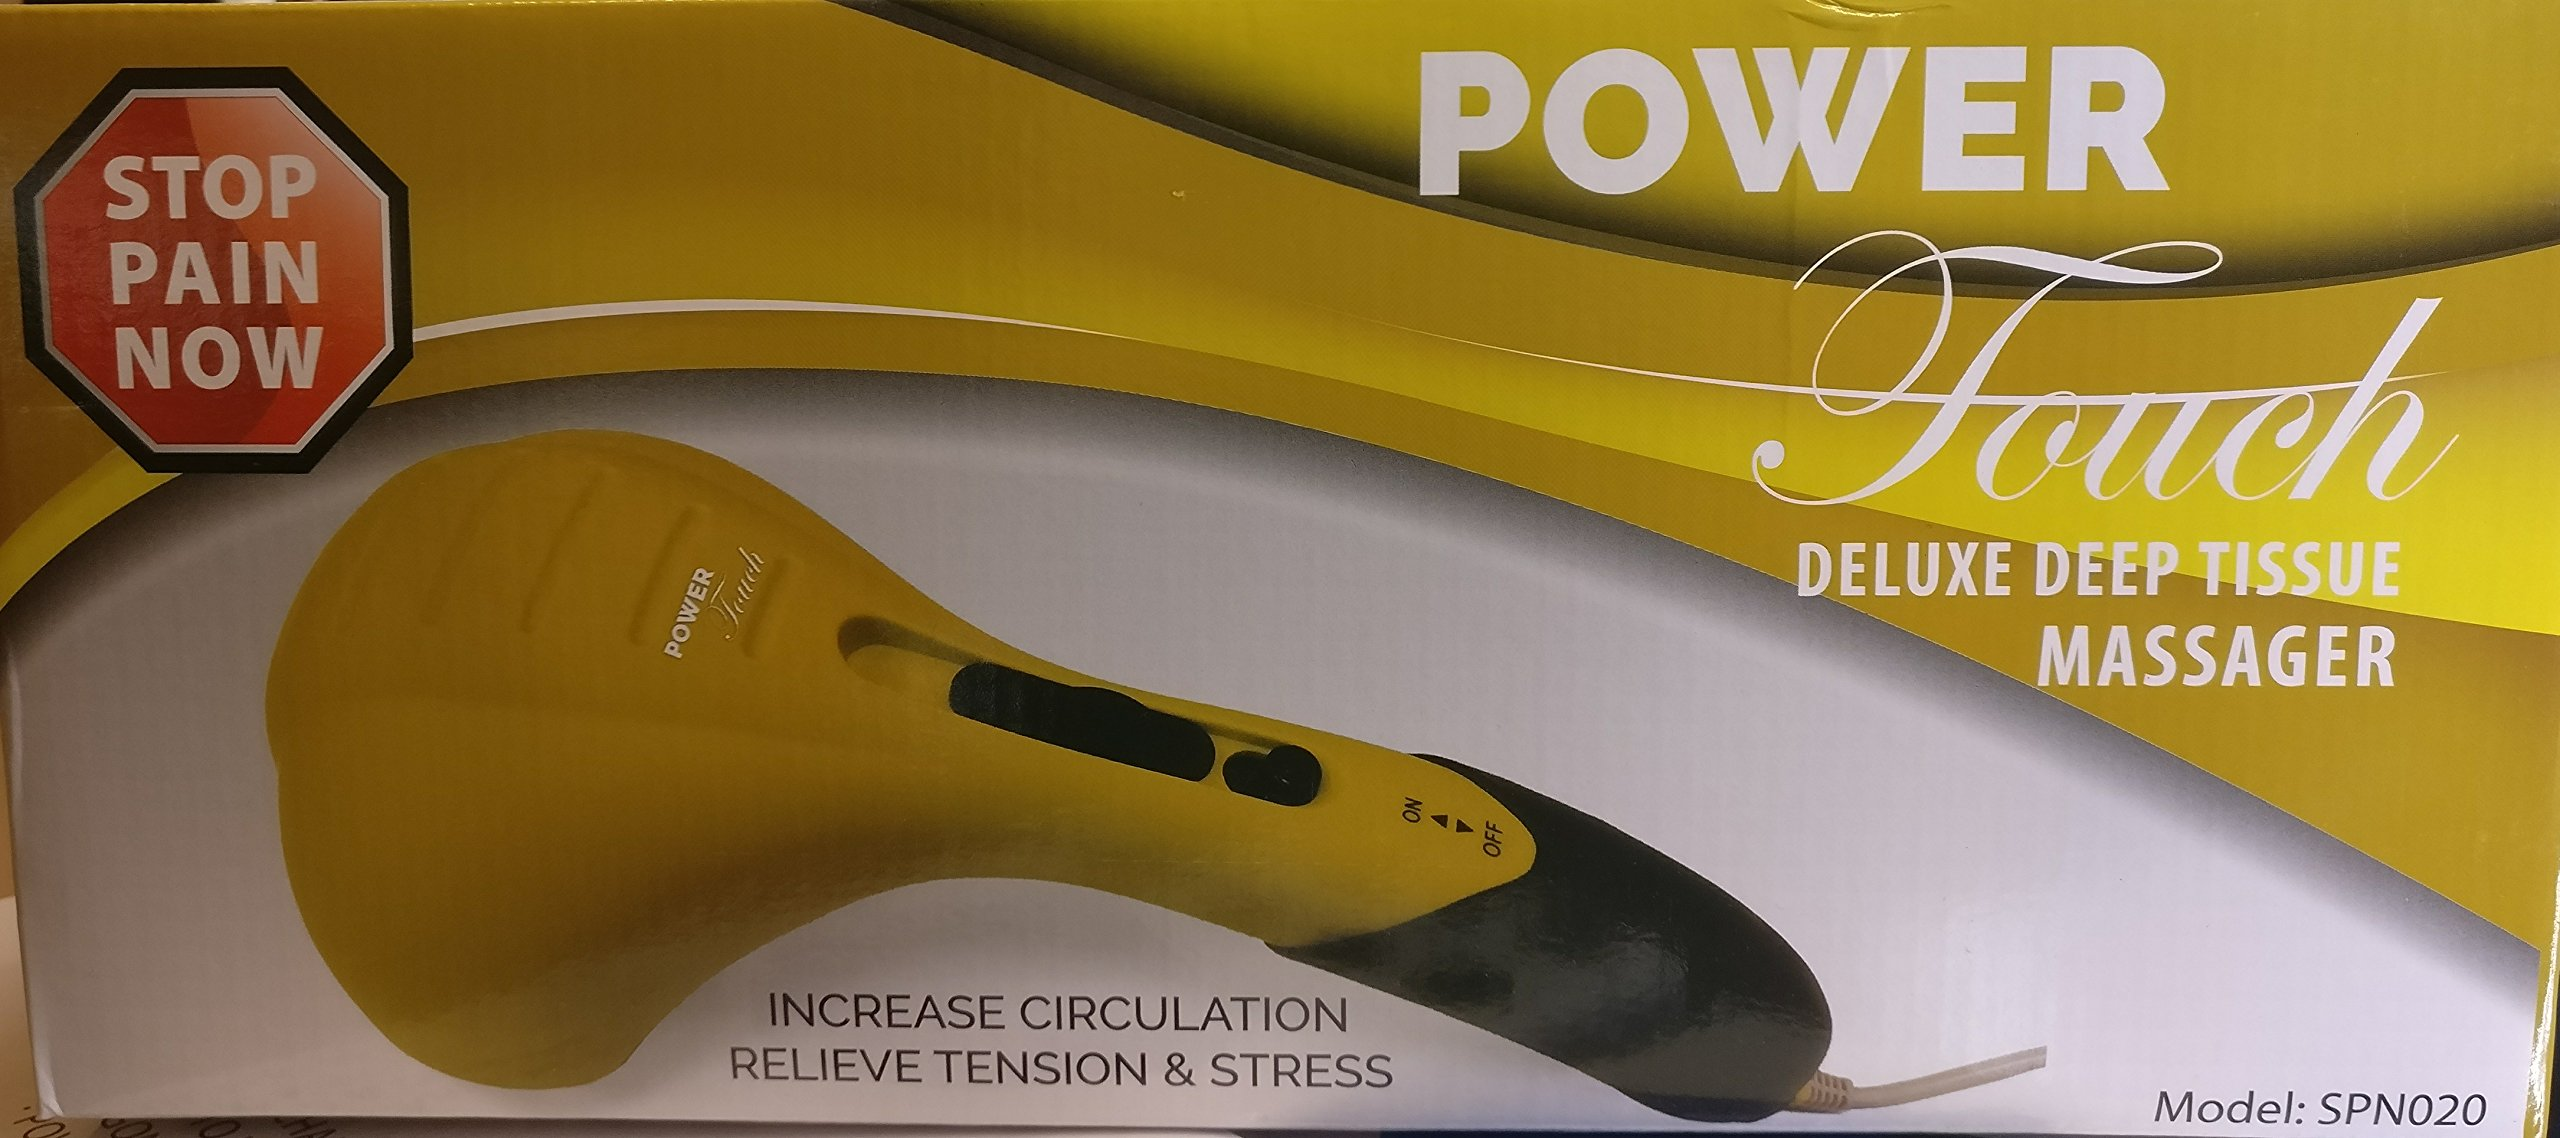 Power Touch Deluxe Deep Tissue Massager Yellow